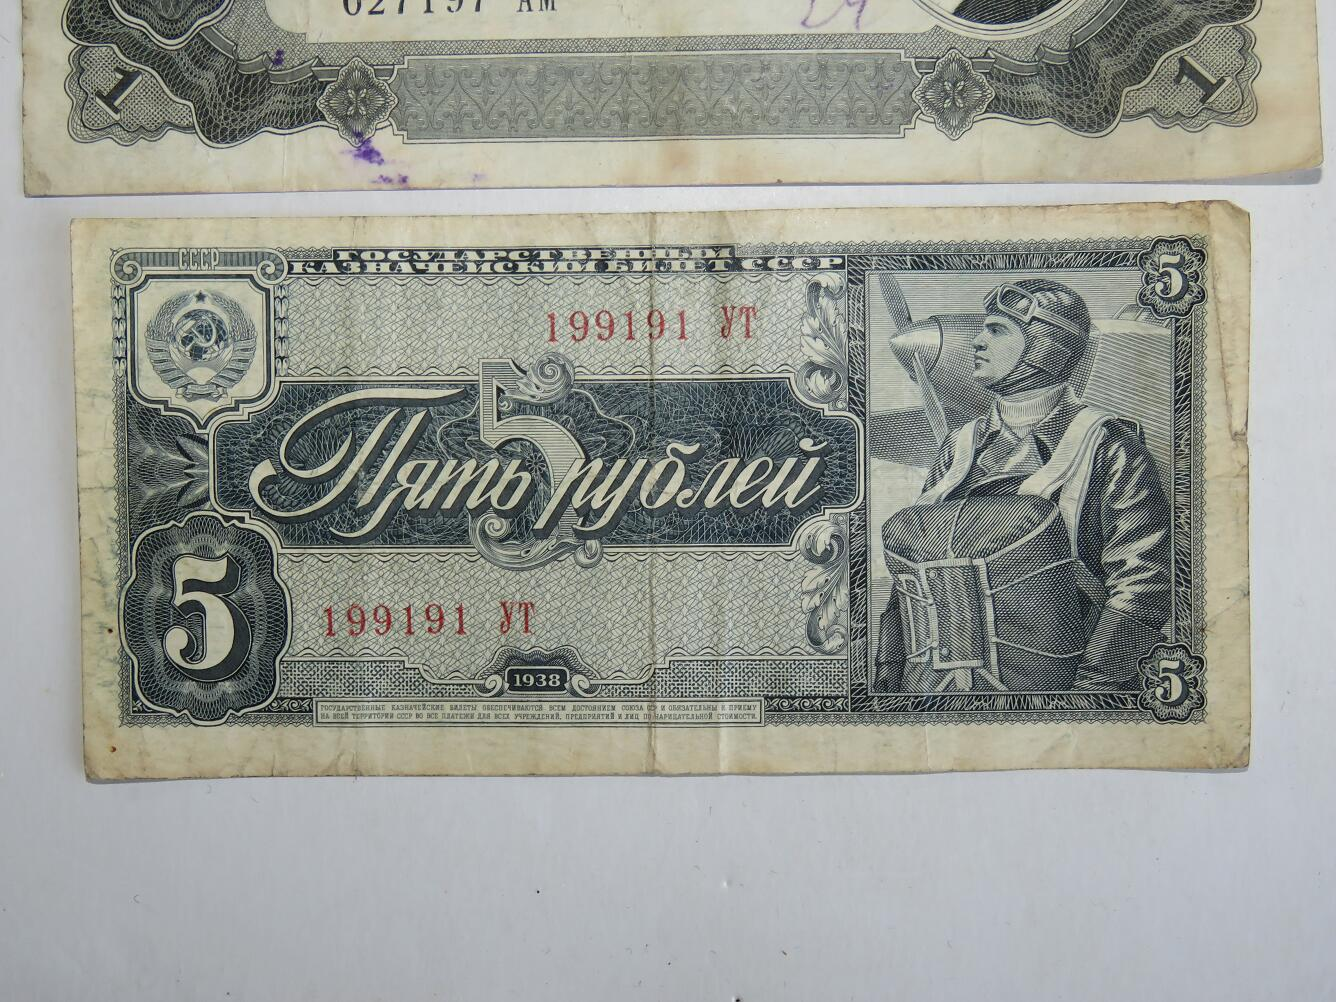 1 .VERY RARE 3 Copy banknoty set 5 rubles 1938 USSR